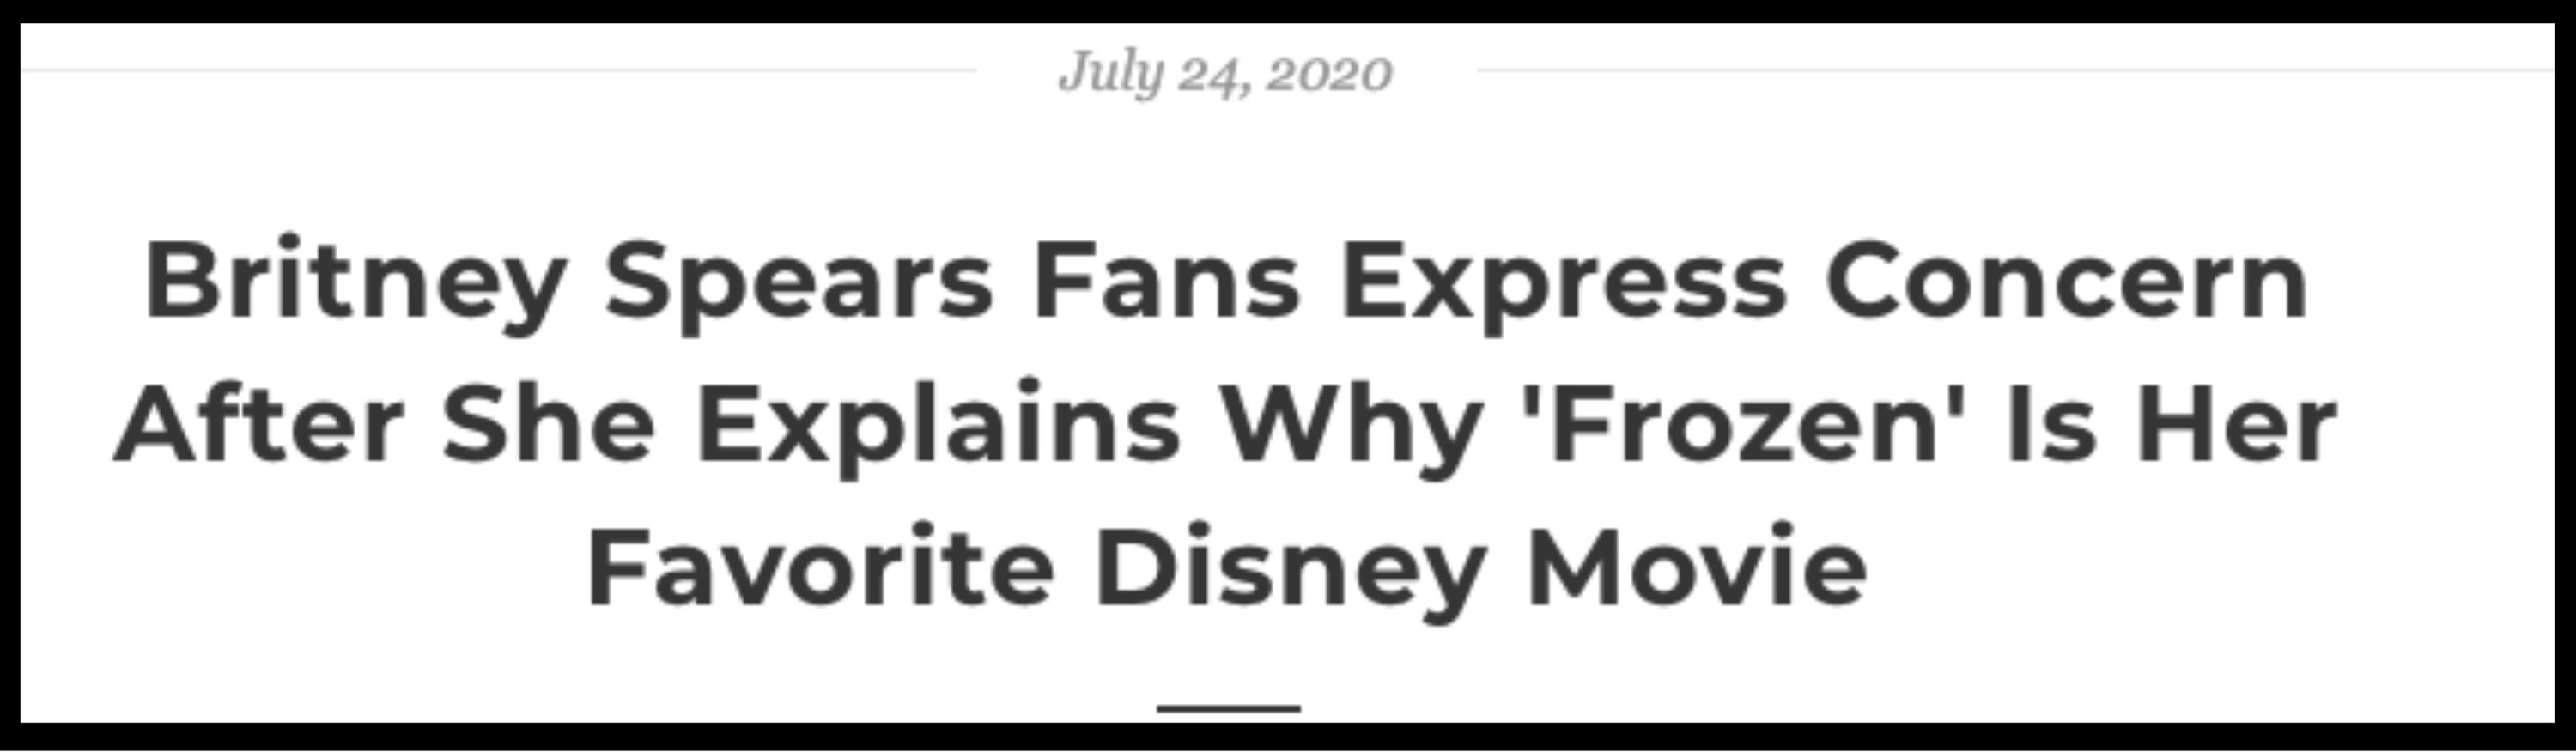 """The headline says """"Britney Spears Fans Express Concern After She Explains Why 'Frozen' Is Her Favorite Disney Movie"""""""